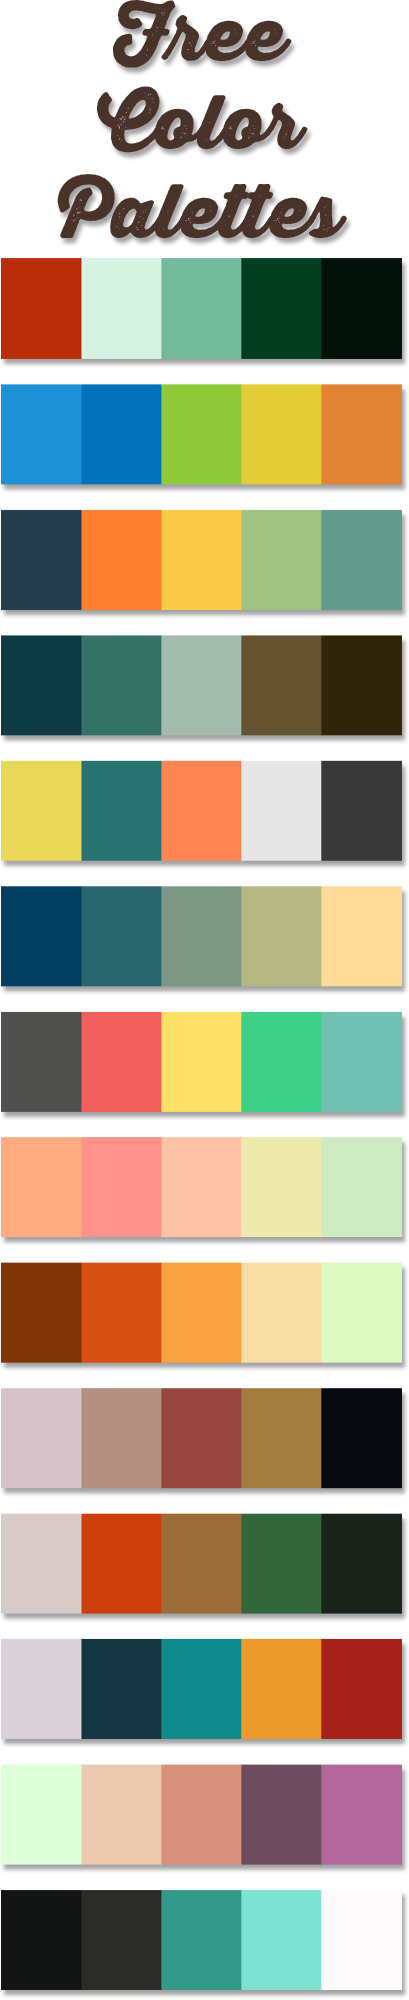 https://cesstrelle.files.wordpress.com/2015/11/hg-freecolorpalettes-1.png?w=620